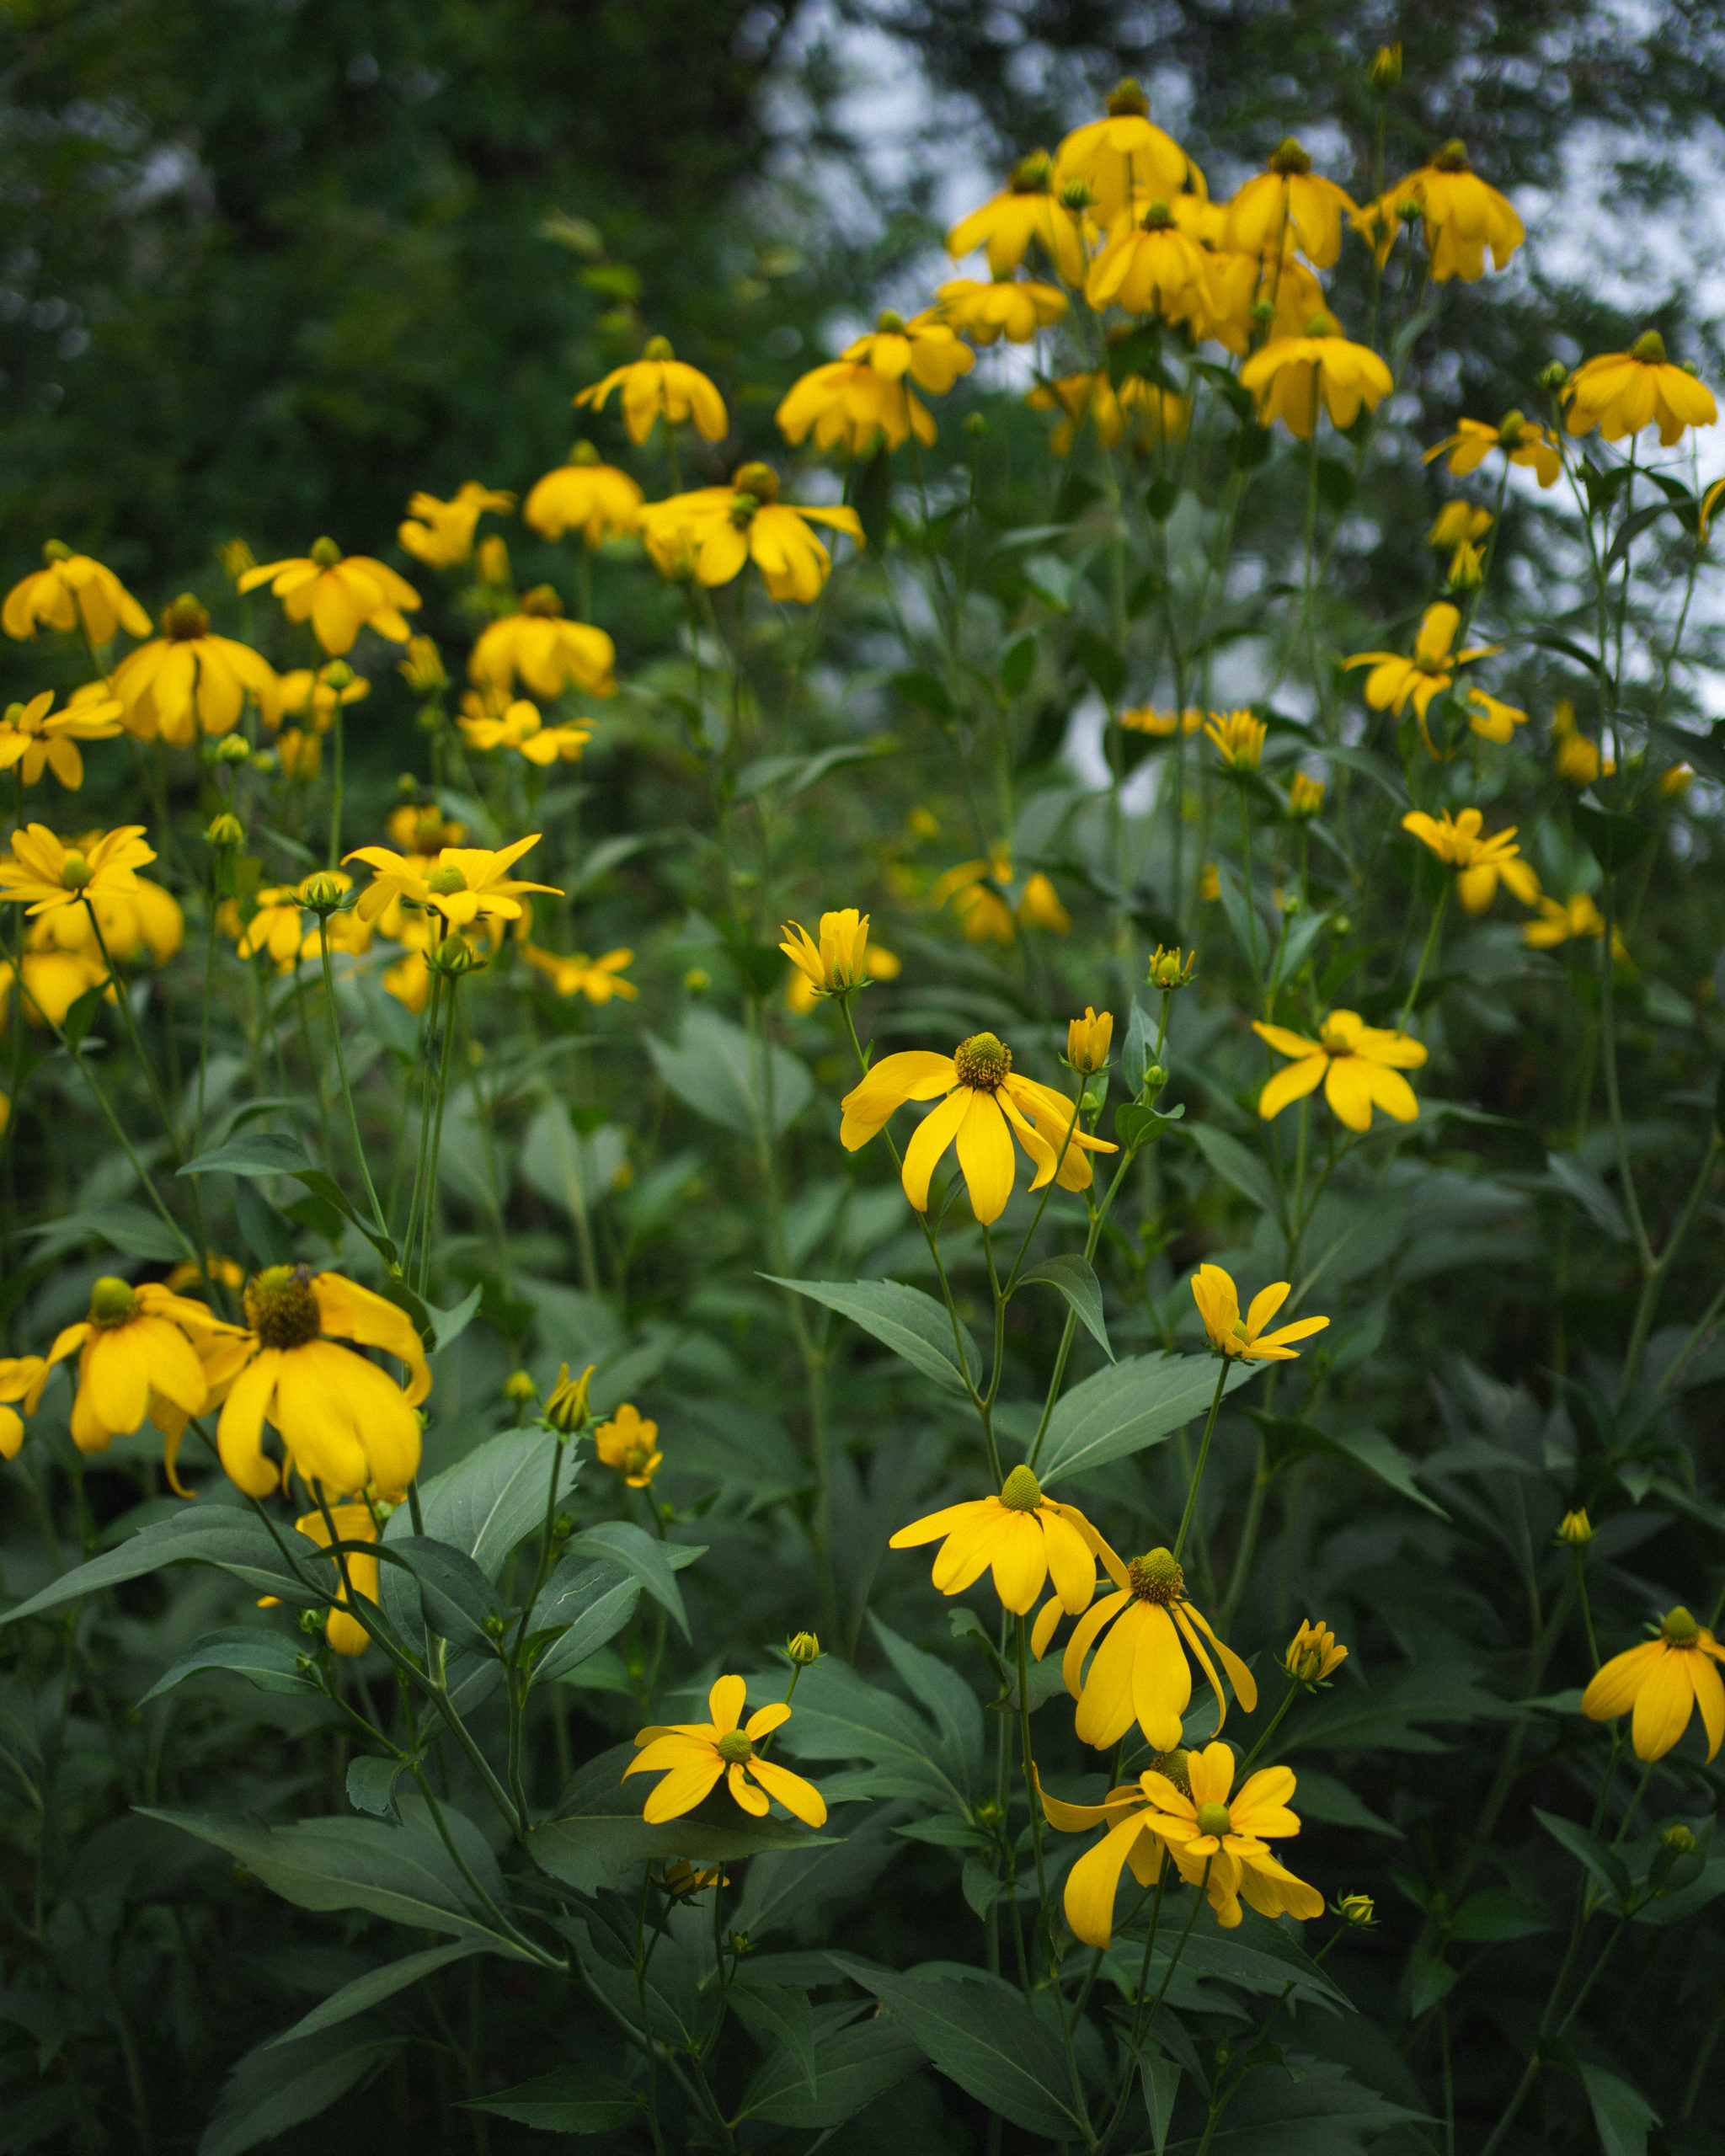 Five Native Perennials For Moist/Wet Conditions